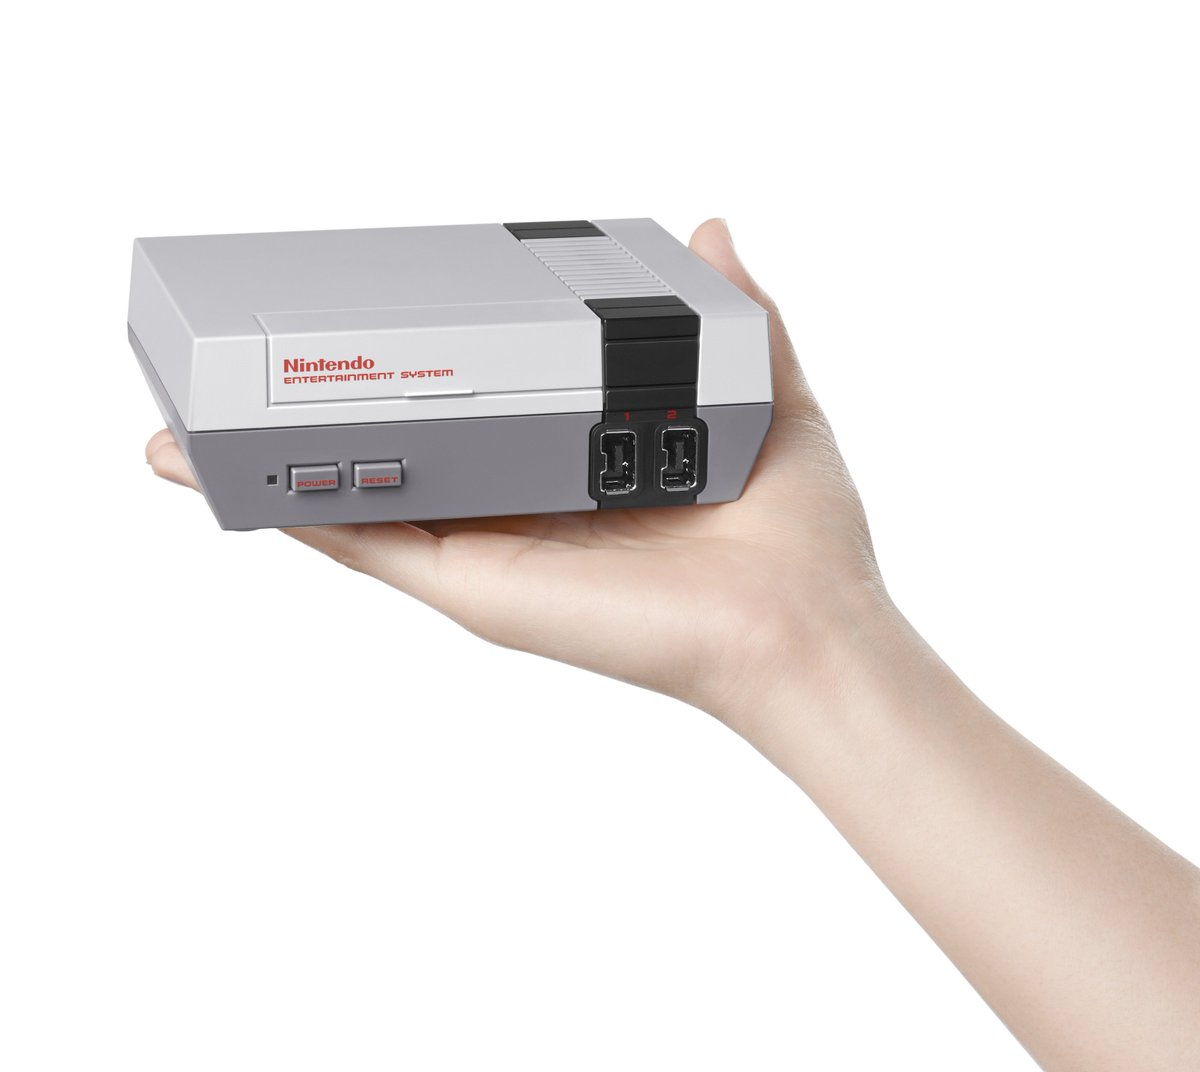 The NES is coming back to stores! Pick up the new mini NES Classic Edition on 11/11 w/ 30 included games! https://t.co/wFDw7lHWb7